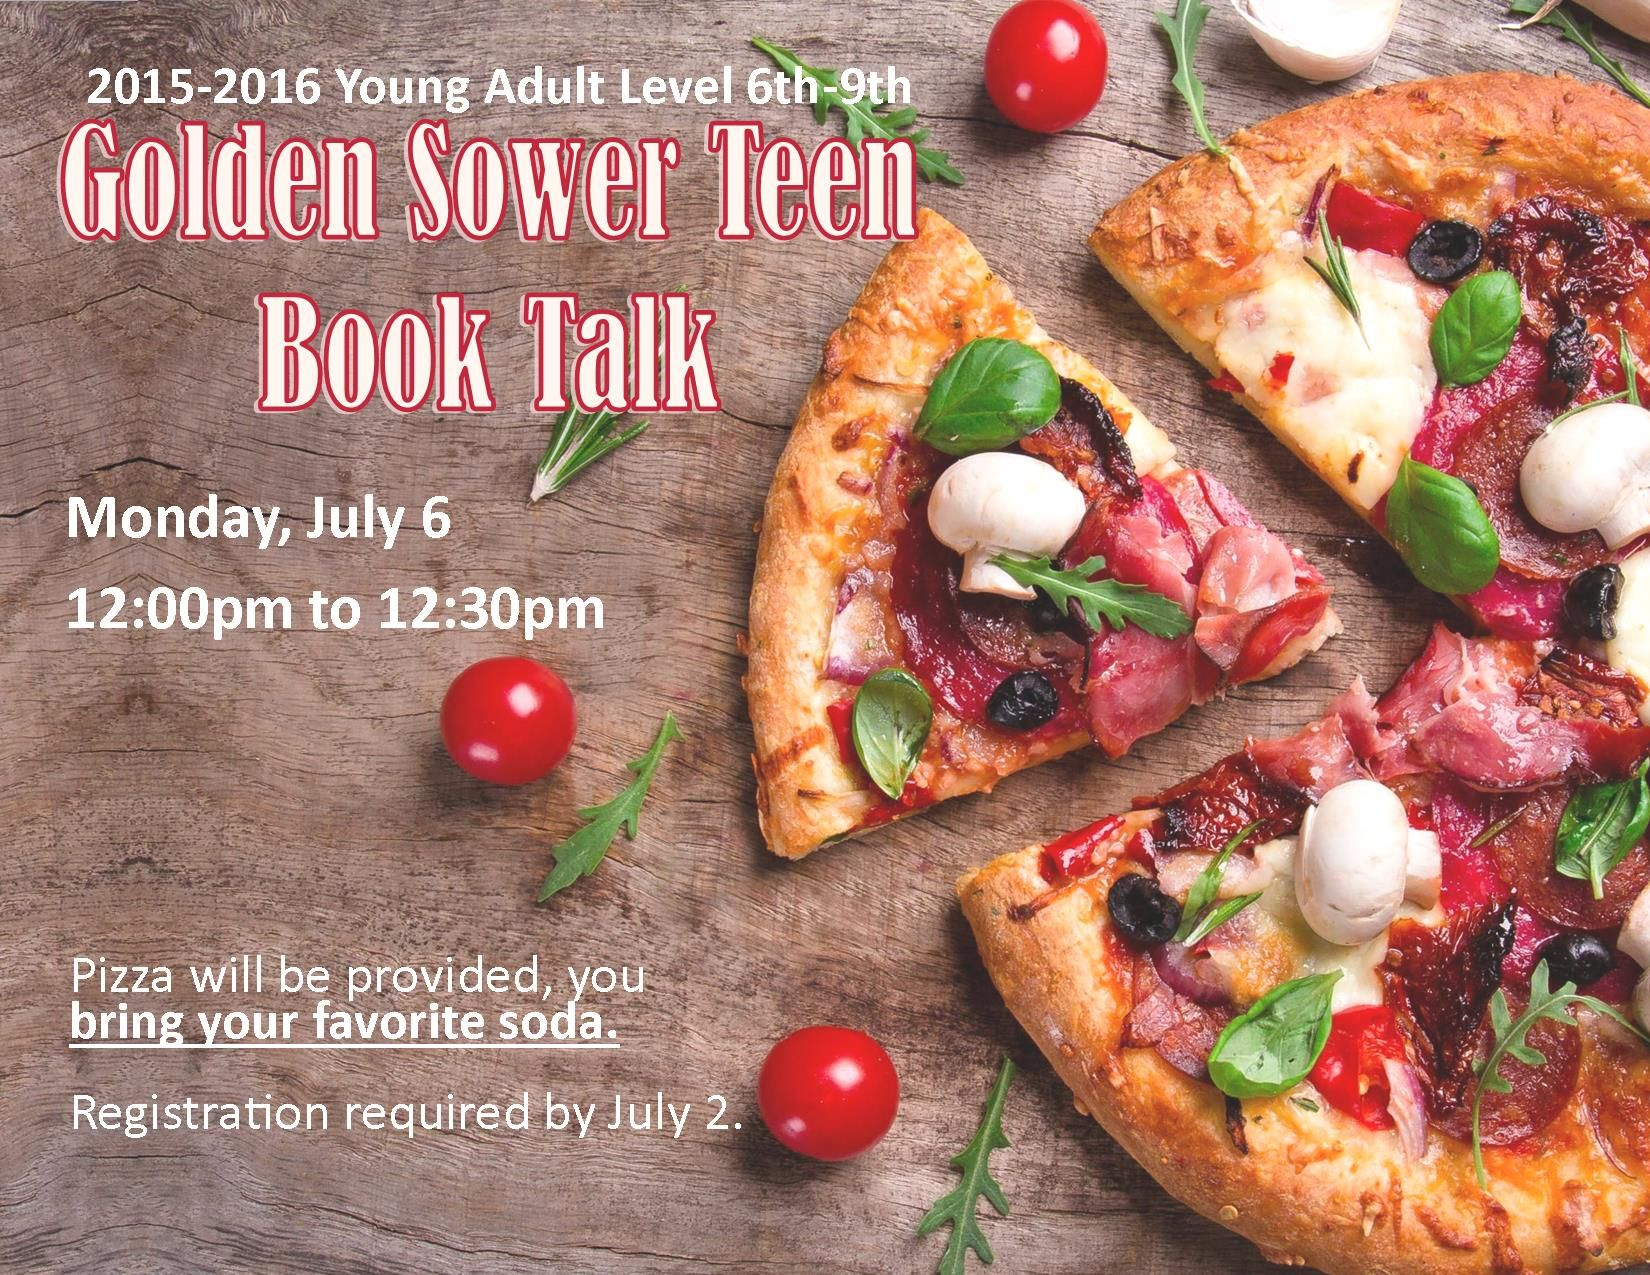 GOLDEN SOWER YOUNG ADULT LEVEL BOOK TALKS. Monday, July 6 @ 12pm-12:30pm. Listen to booktalks about the new 2015-2016 Young Adult Level (6th-9th grade) Golden Sower nominees! Pizza will be provided, you bring your favorite soda. Registration required by July 2.